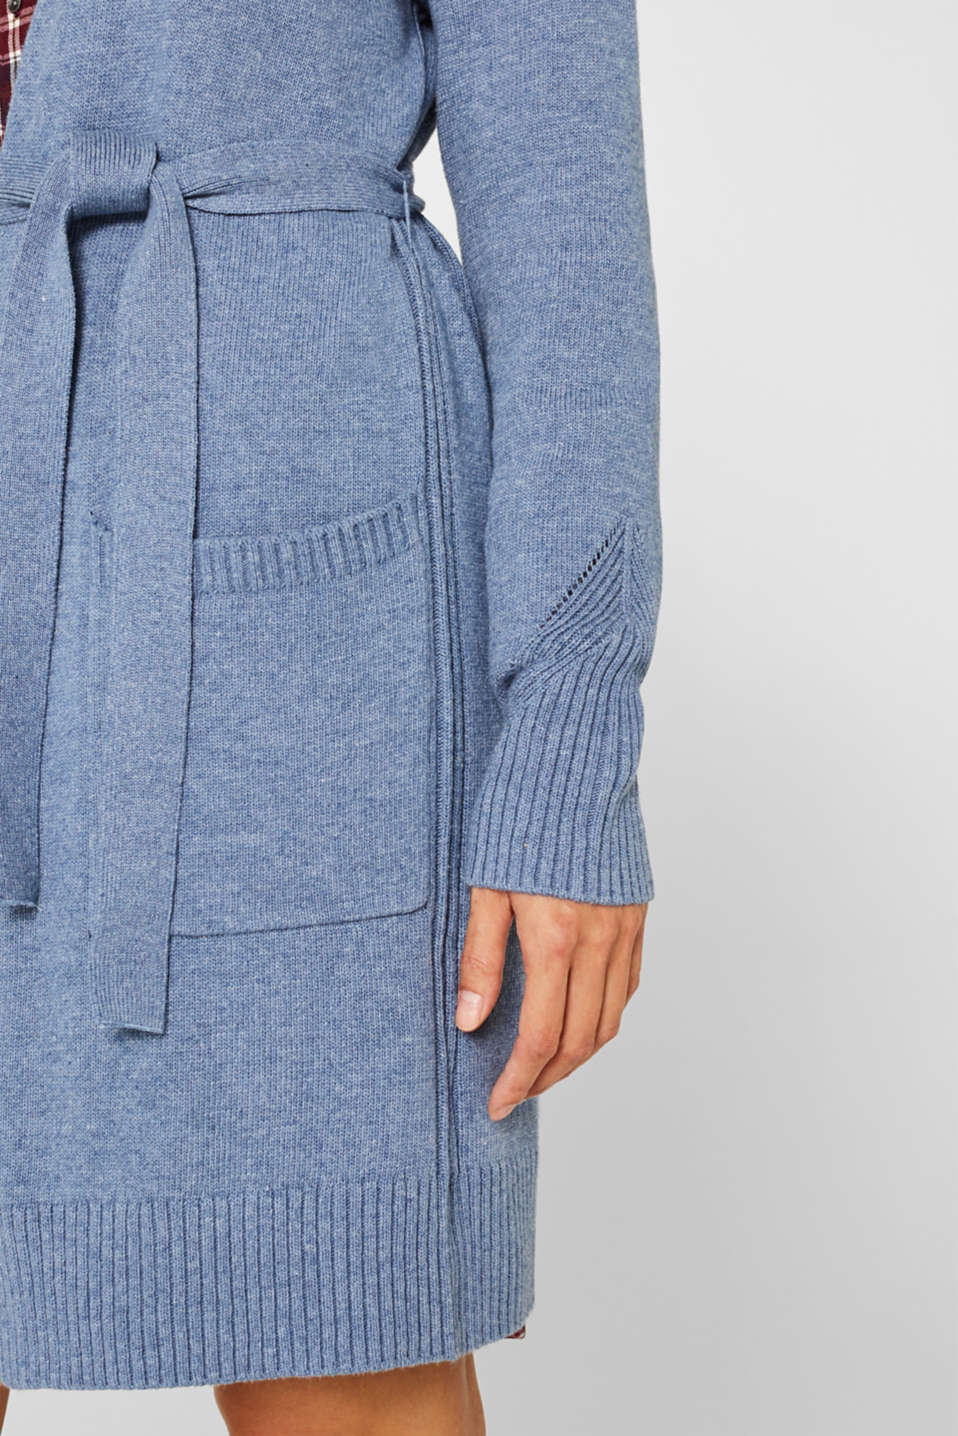 Wool blend: long cardigan with a belt, GREY BLUE 5, detail image number 2